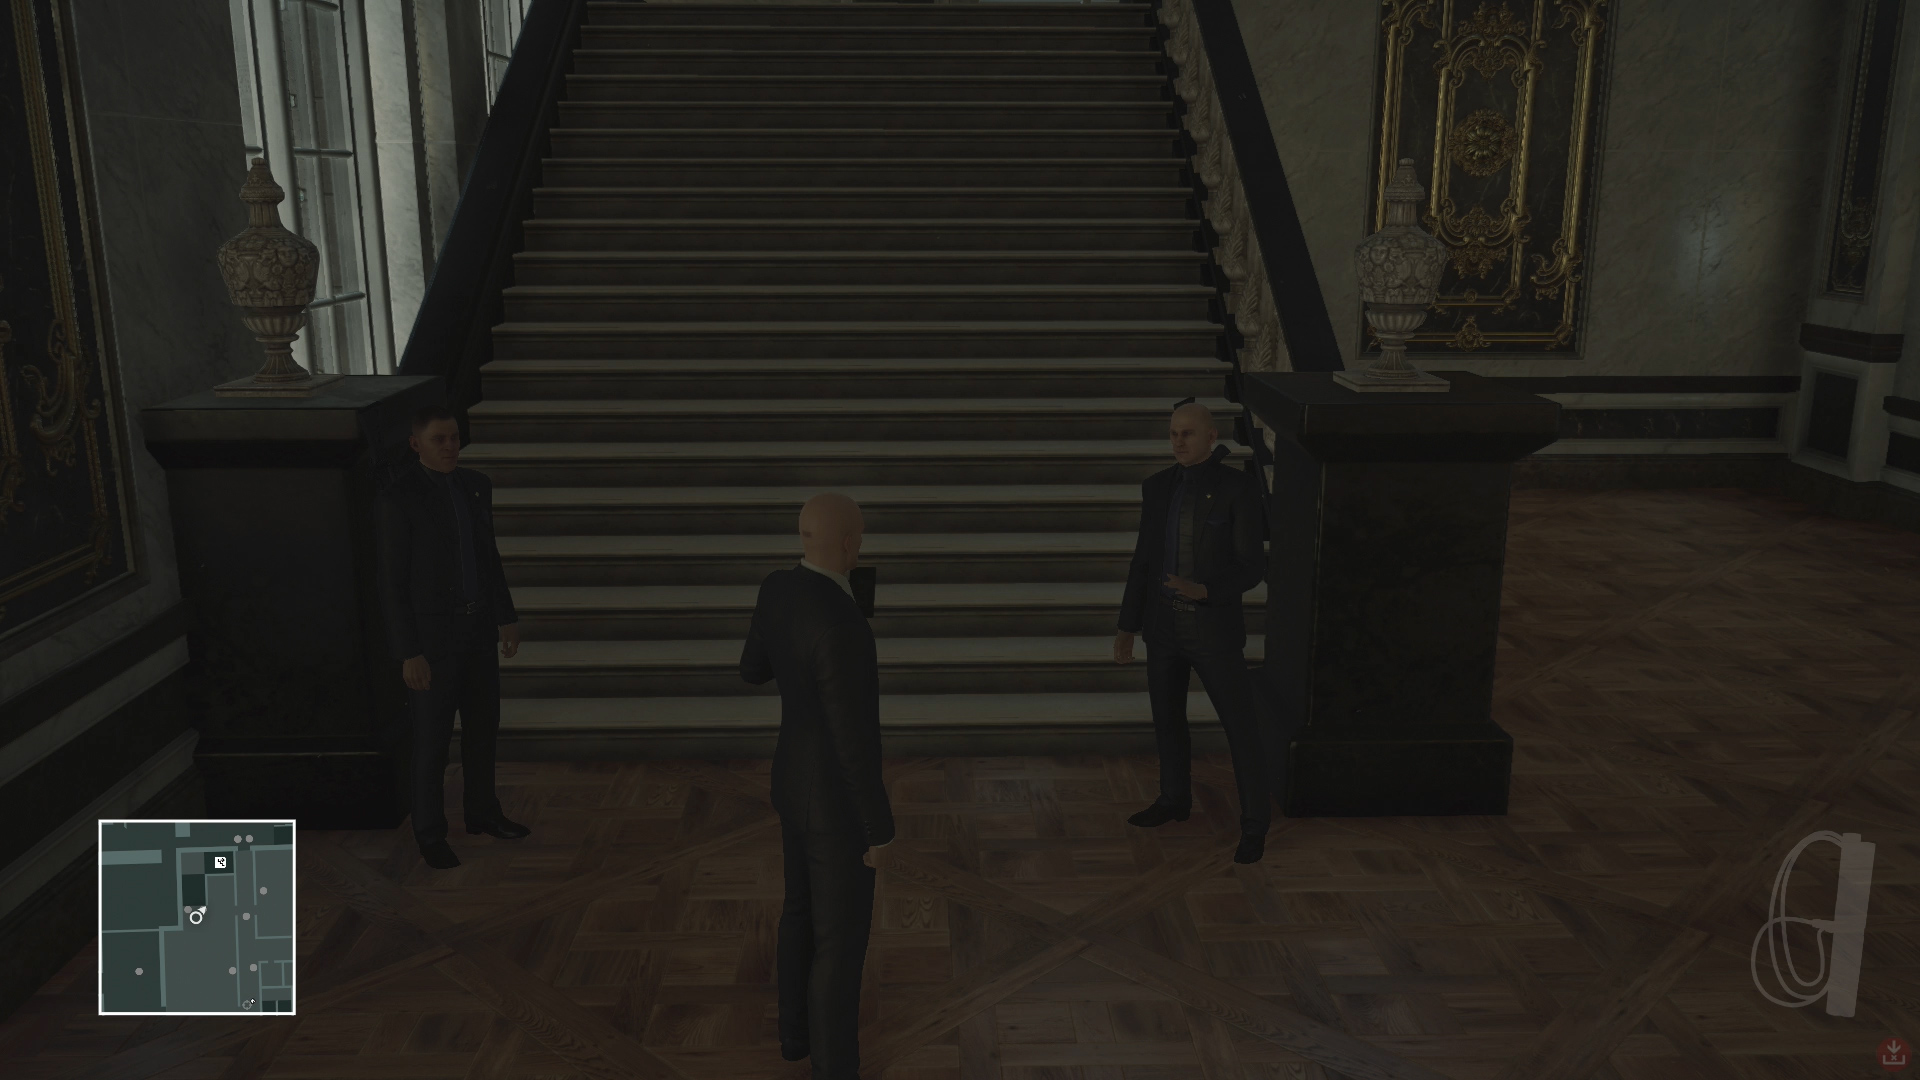 hitman 2016 paris walkthrough